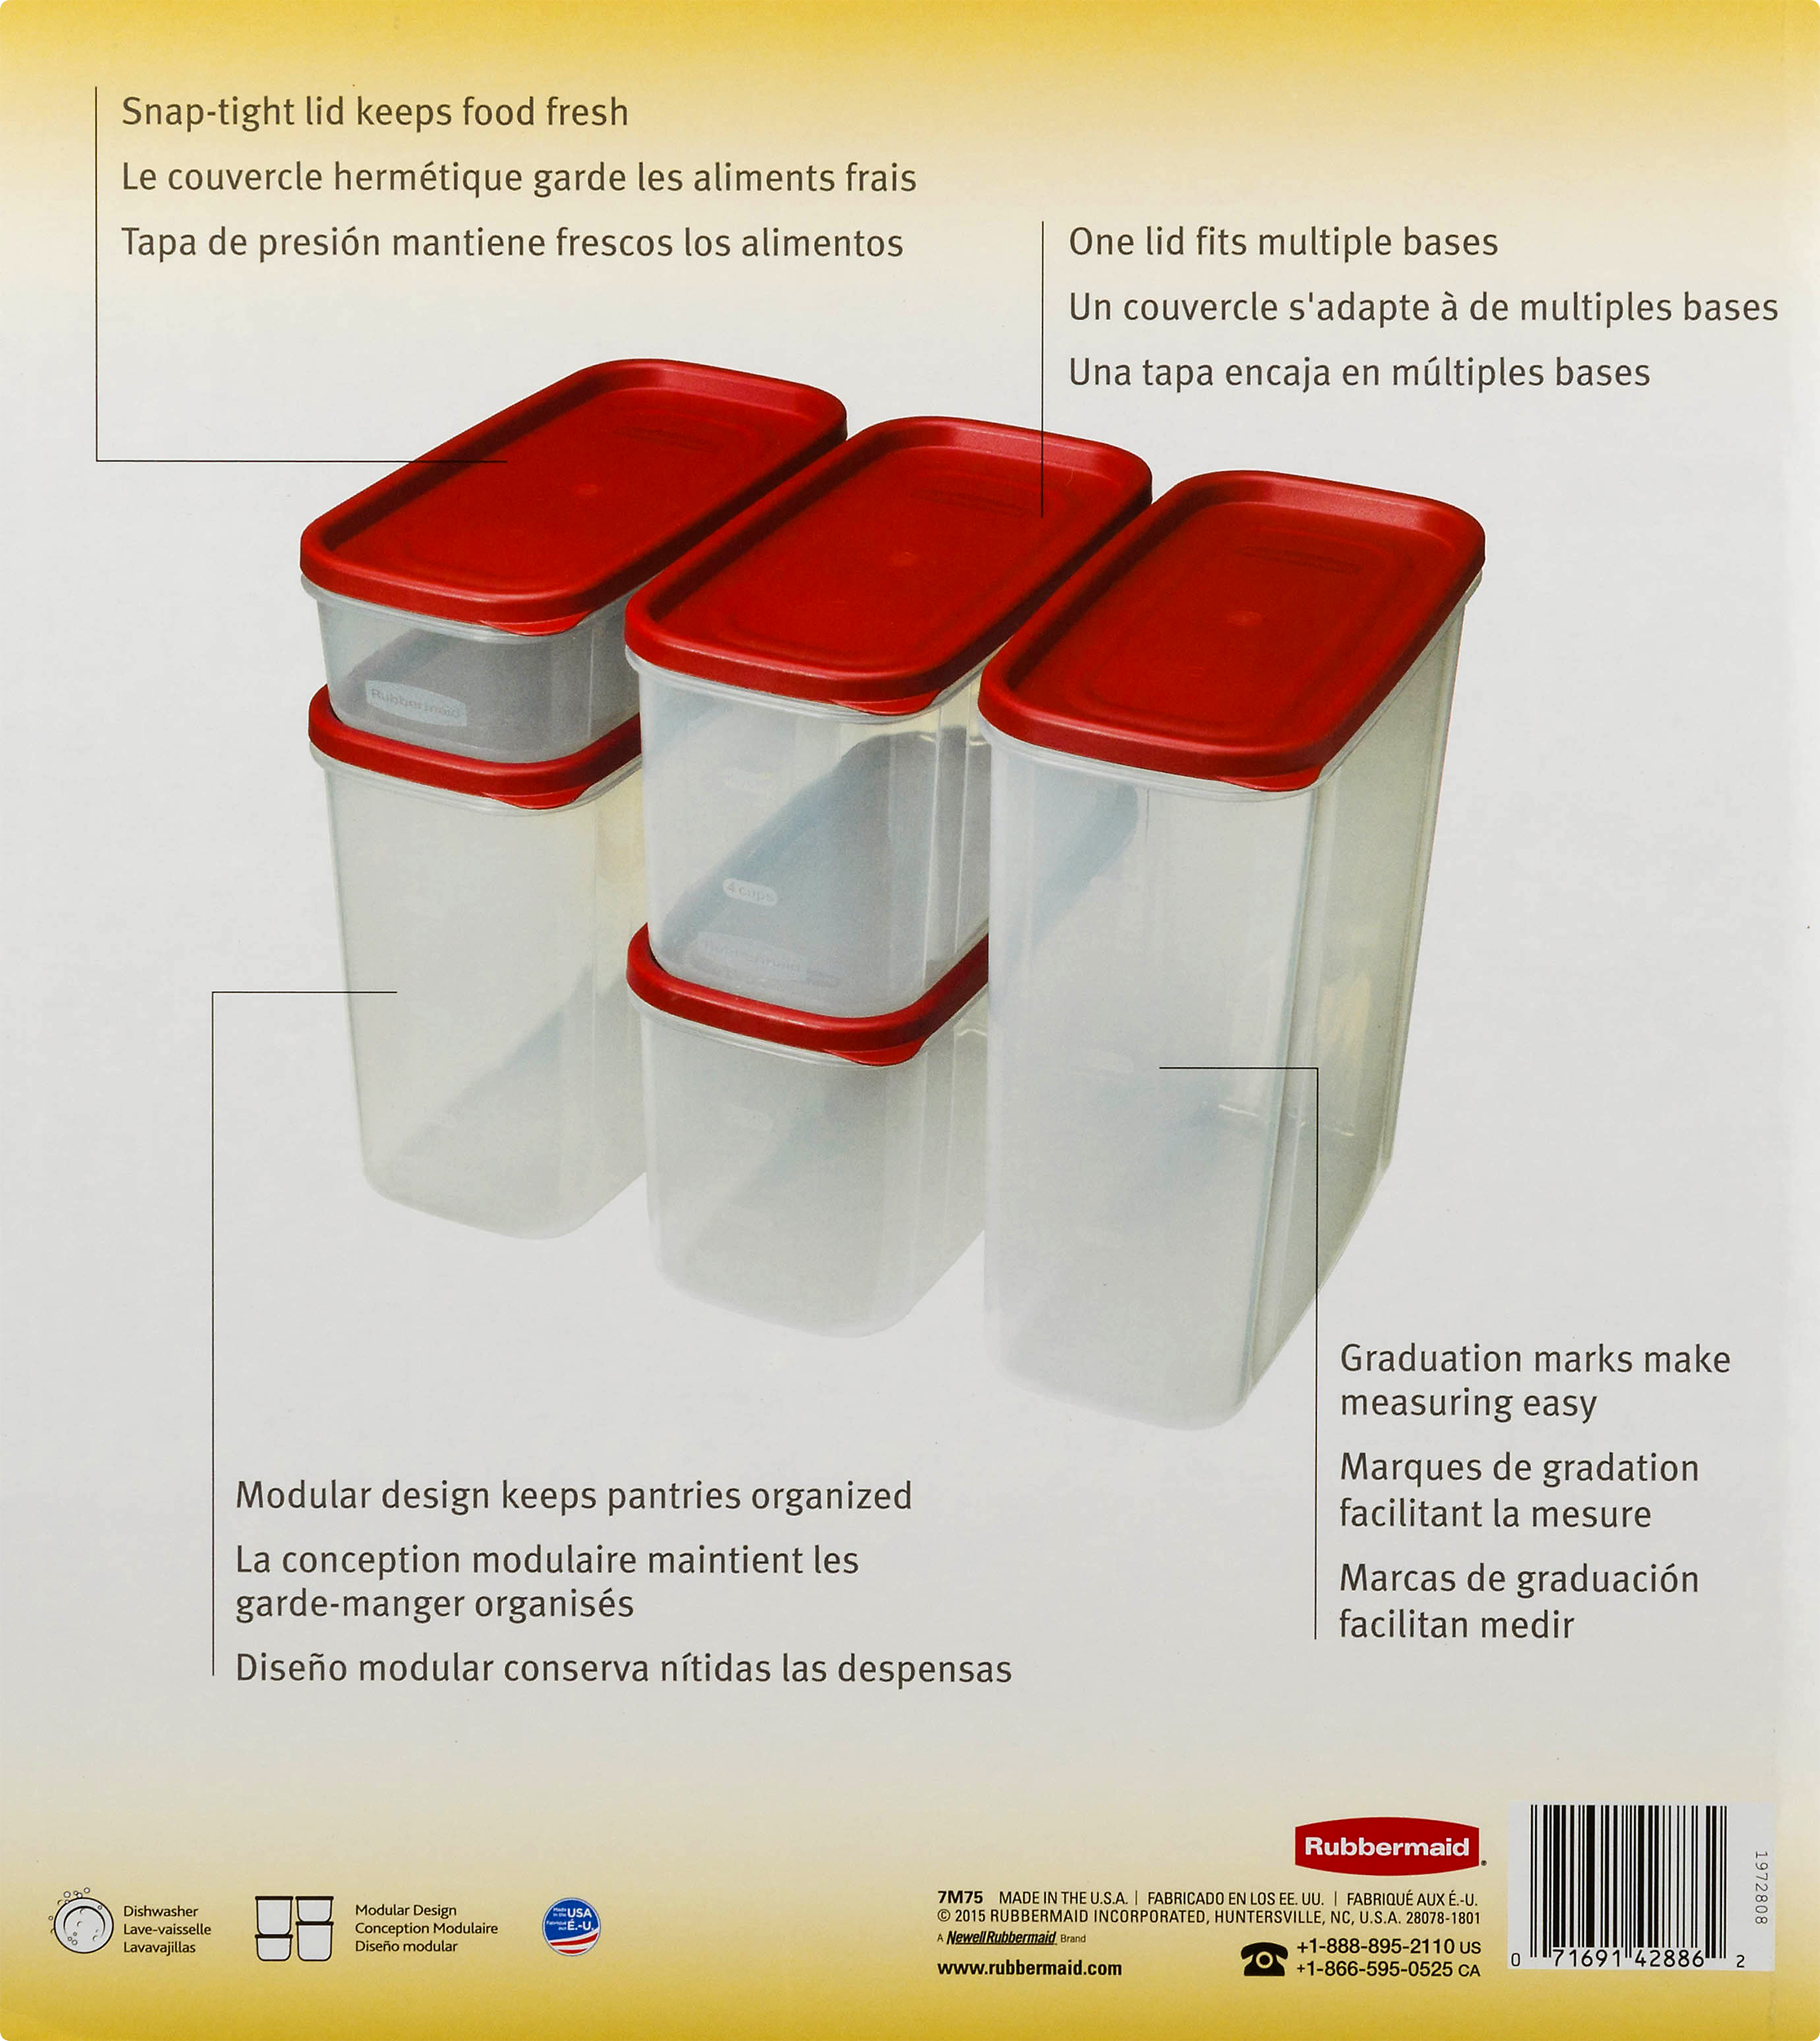 Rubbermaid 8 piece modular food canister set walmart fandeluxe Image collections